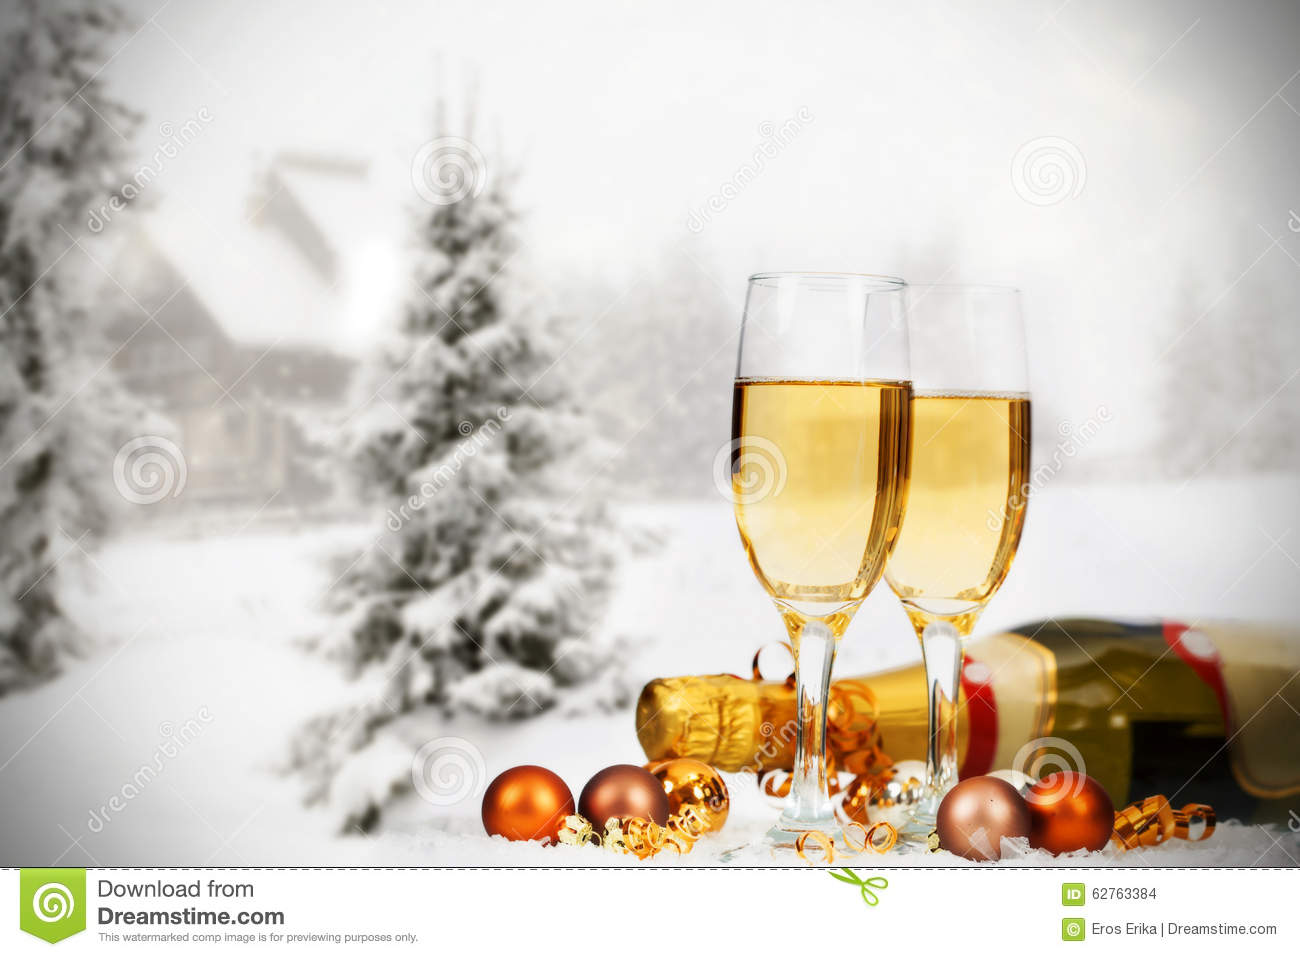 Xmas Tree Hd Wallpaper Christmas Decorations And Champagne Against Winter